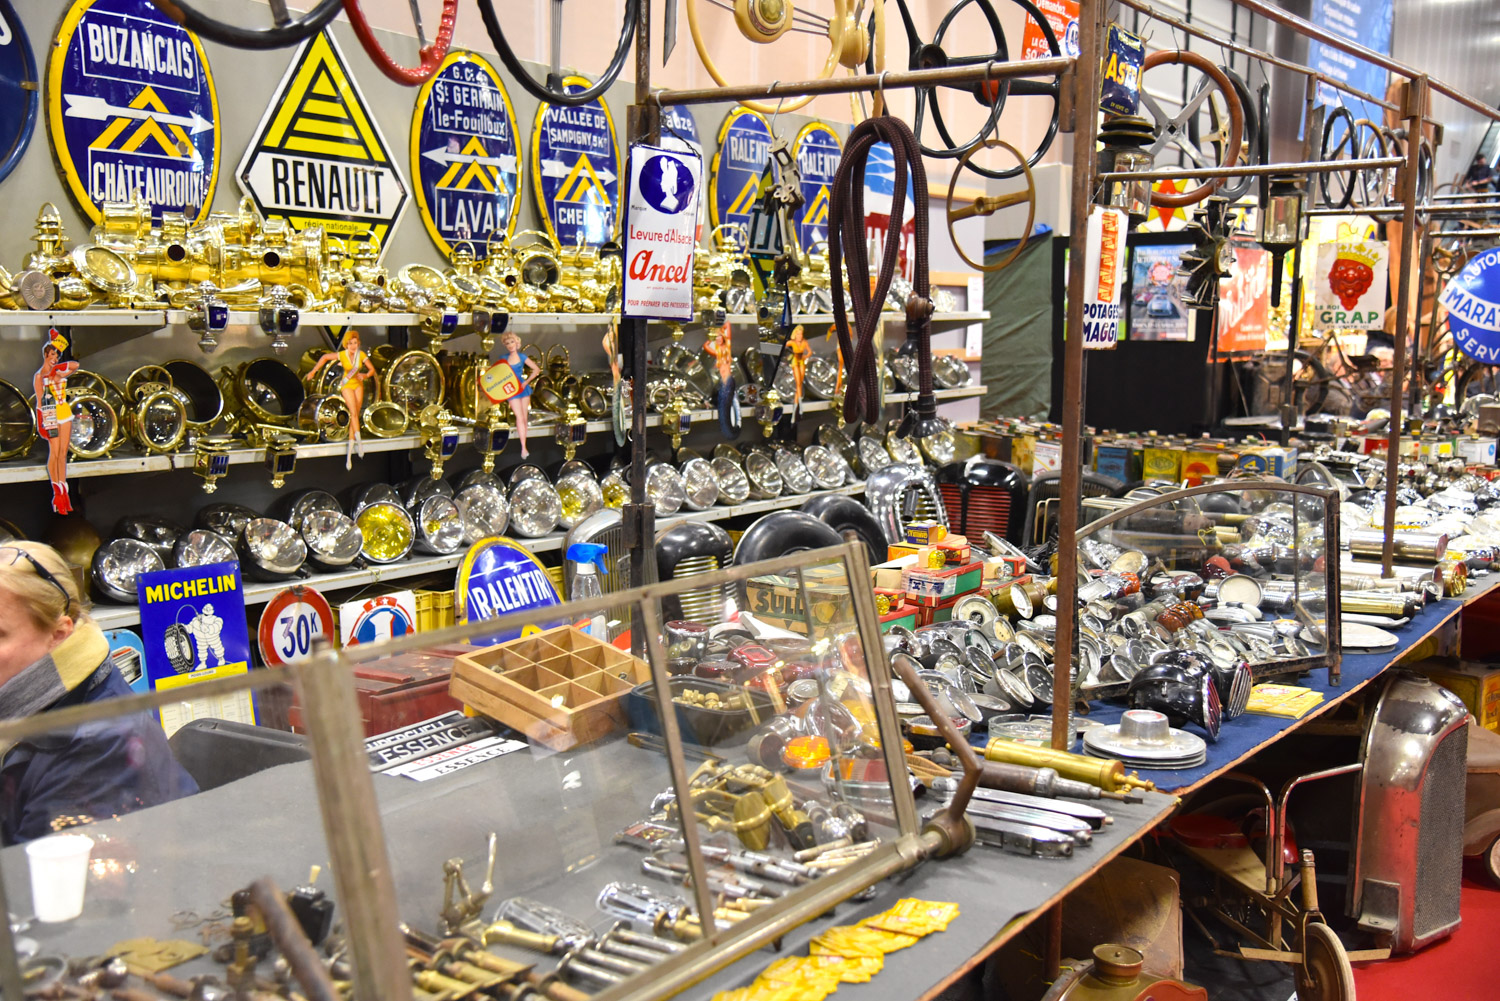 As you would expect from a French car show, Retromobile features a host of vendors selling parts for French makes, including Renault, Citroen, Peugeot, Simca, and others.